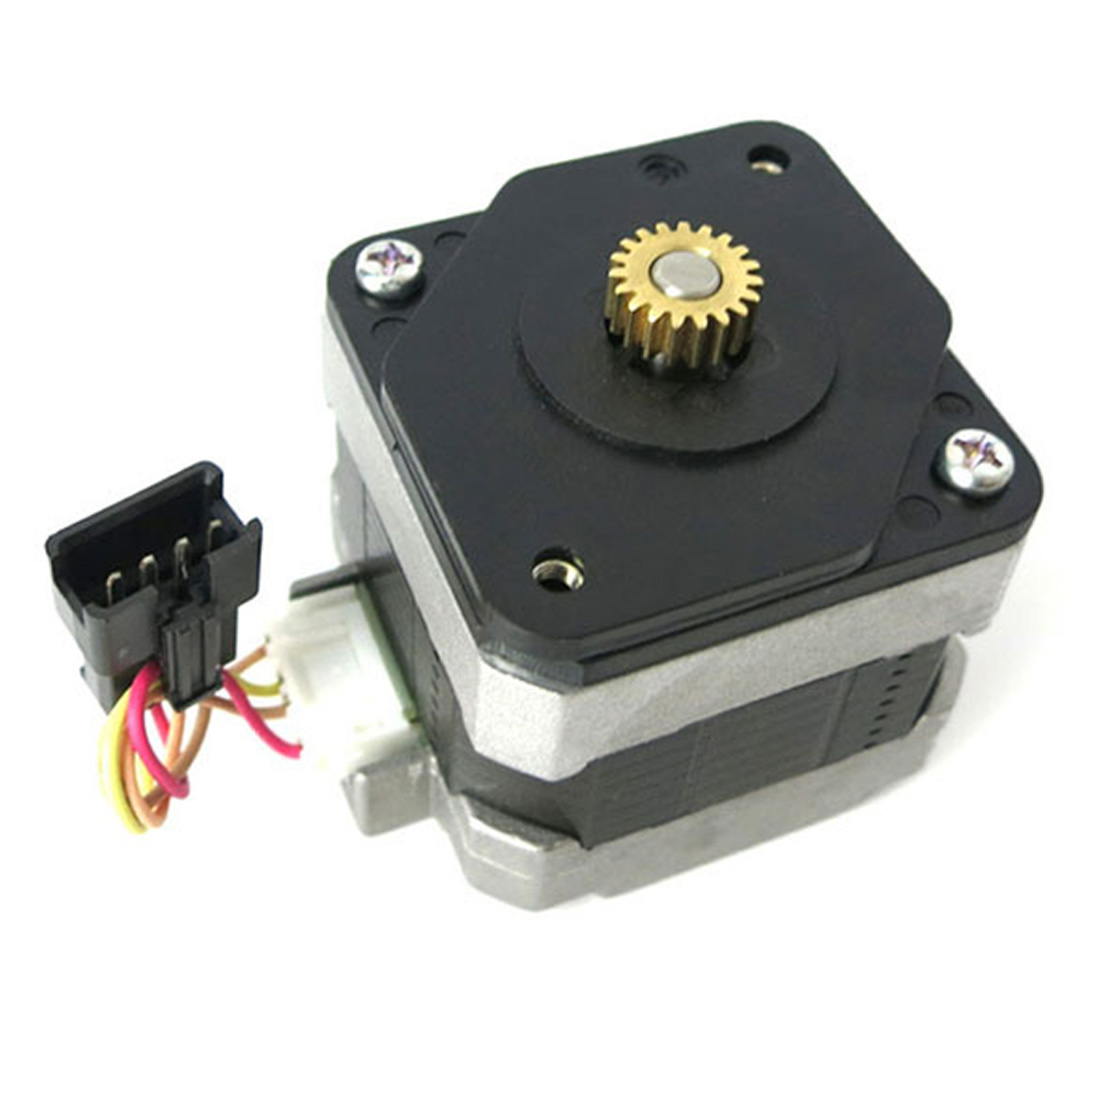 1 set 12V Metal Micro Gear Stepper Motor and Four Wire Two Phase Stepper Angle 0.5 Modulus 42mm 1.8 Stepping Angle 28byj 48 12v 4 phase 5 wire stepper motor 28byj48 12v gear stepper motor